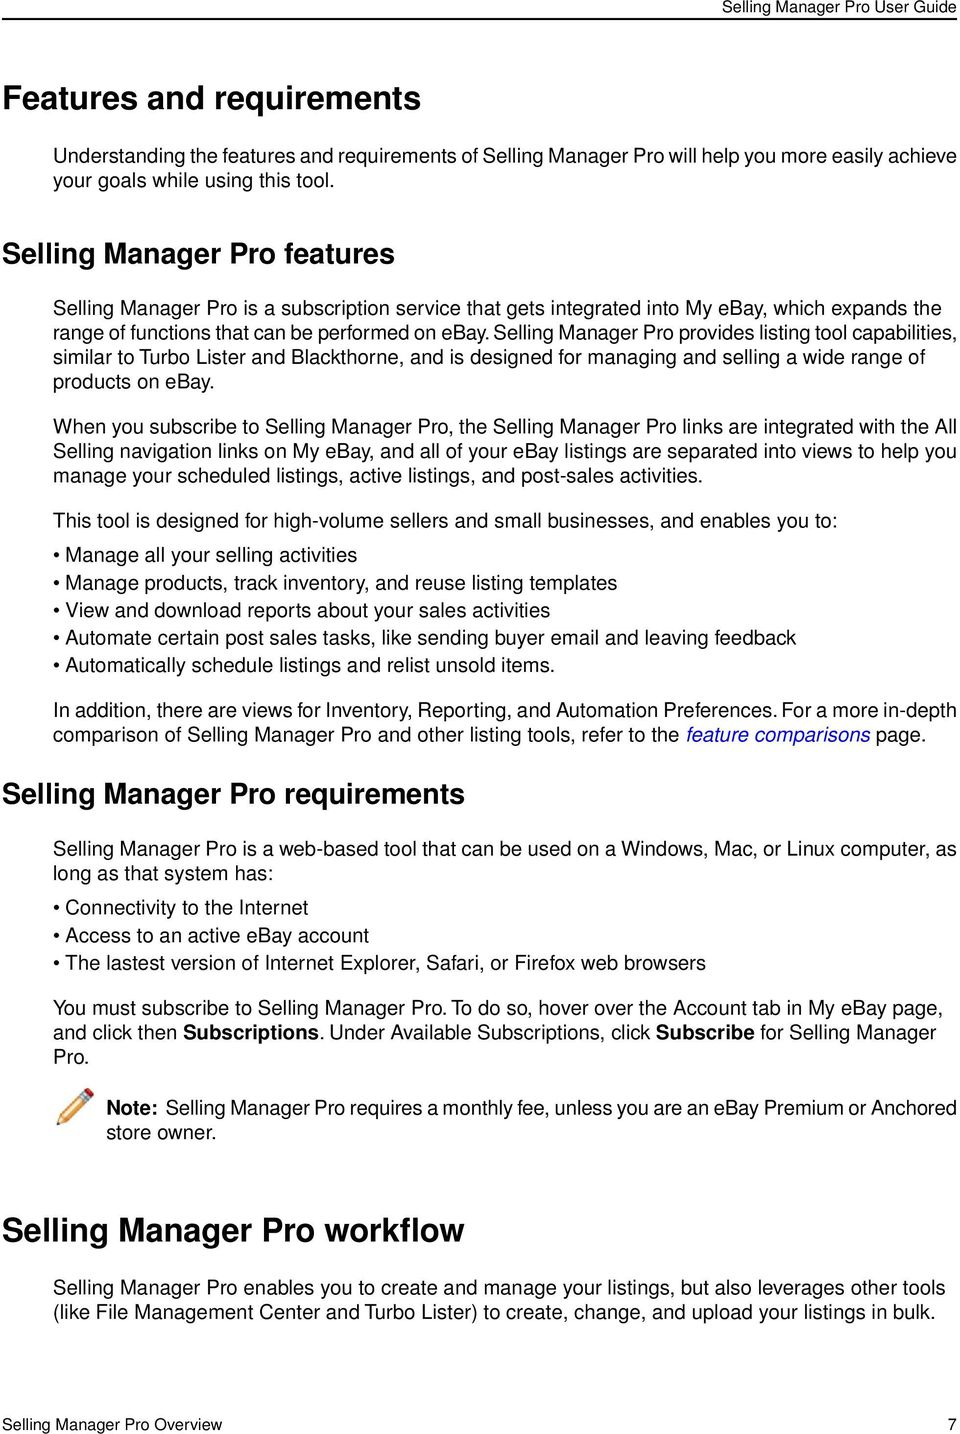 Selling Manager Pro User Guide Pdf Free Download